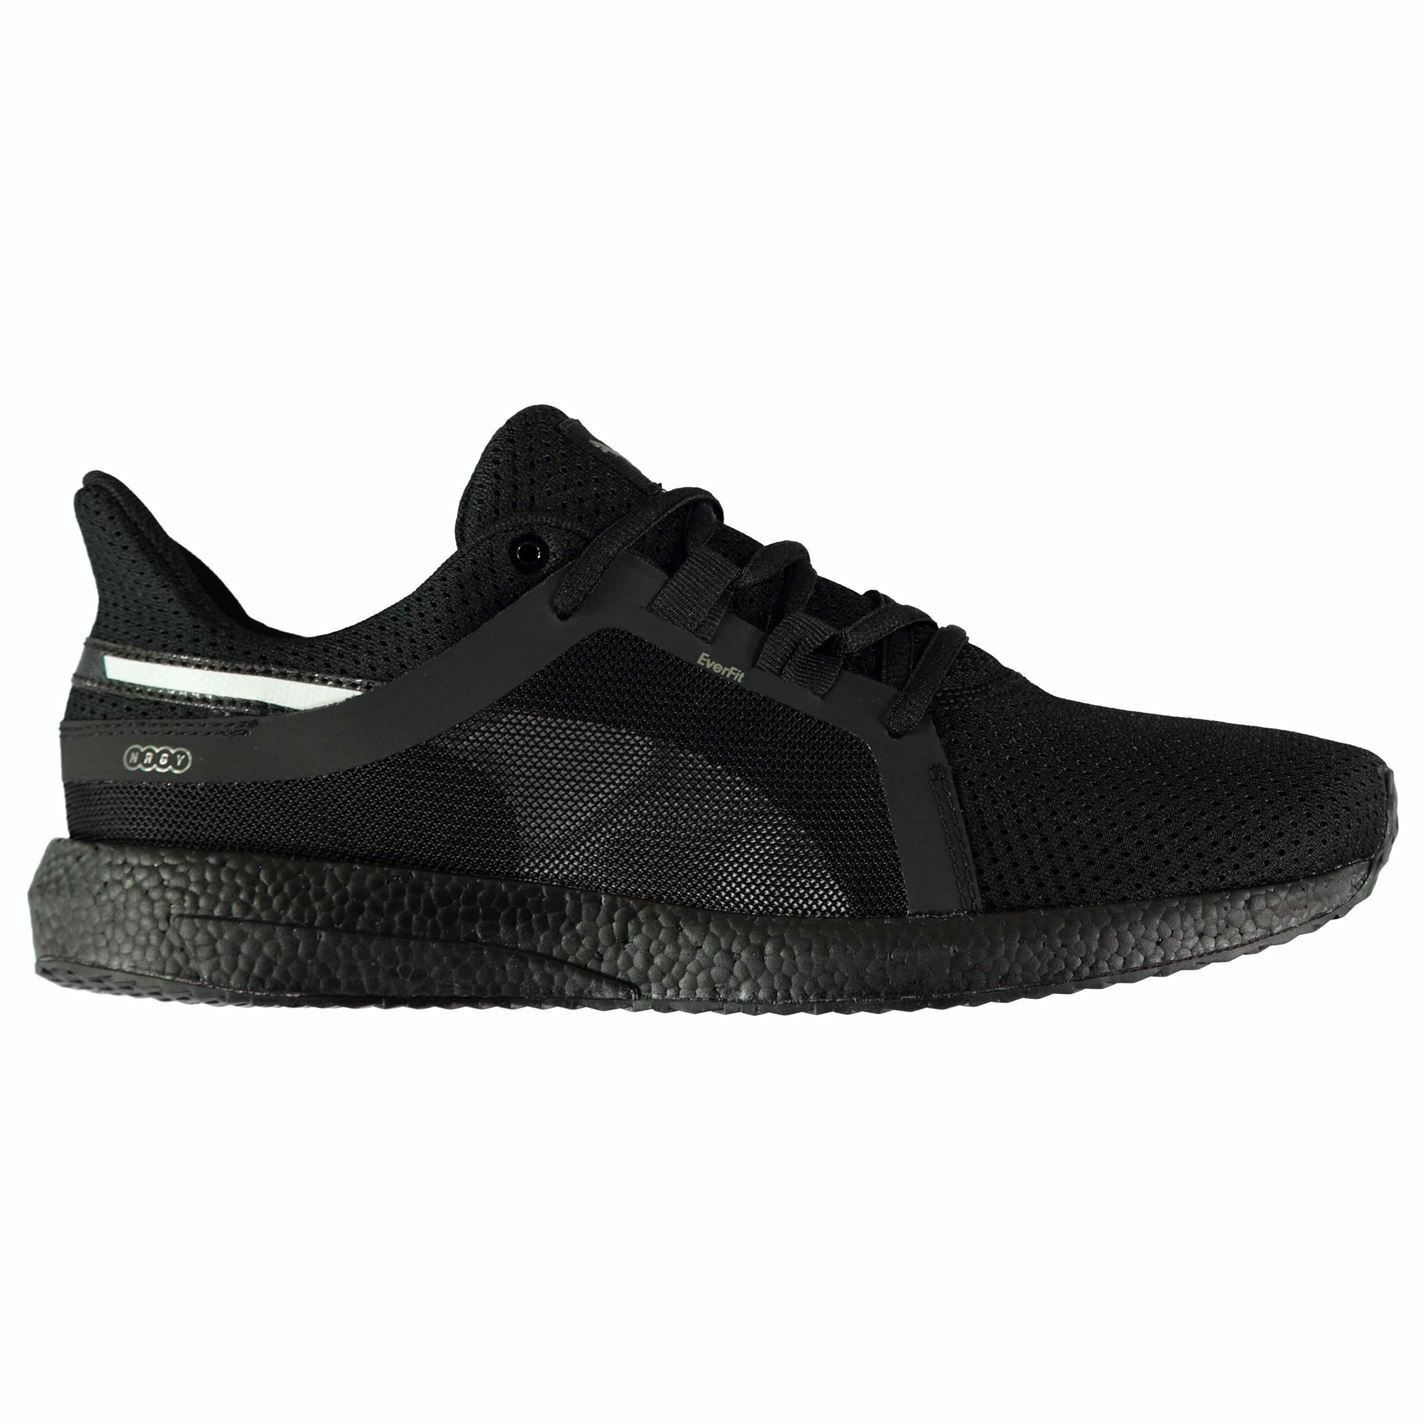 Puma Mega NRGY Turbo Trainers homme noir Sports chaussures Sneakers